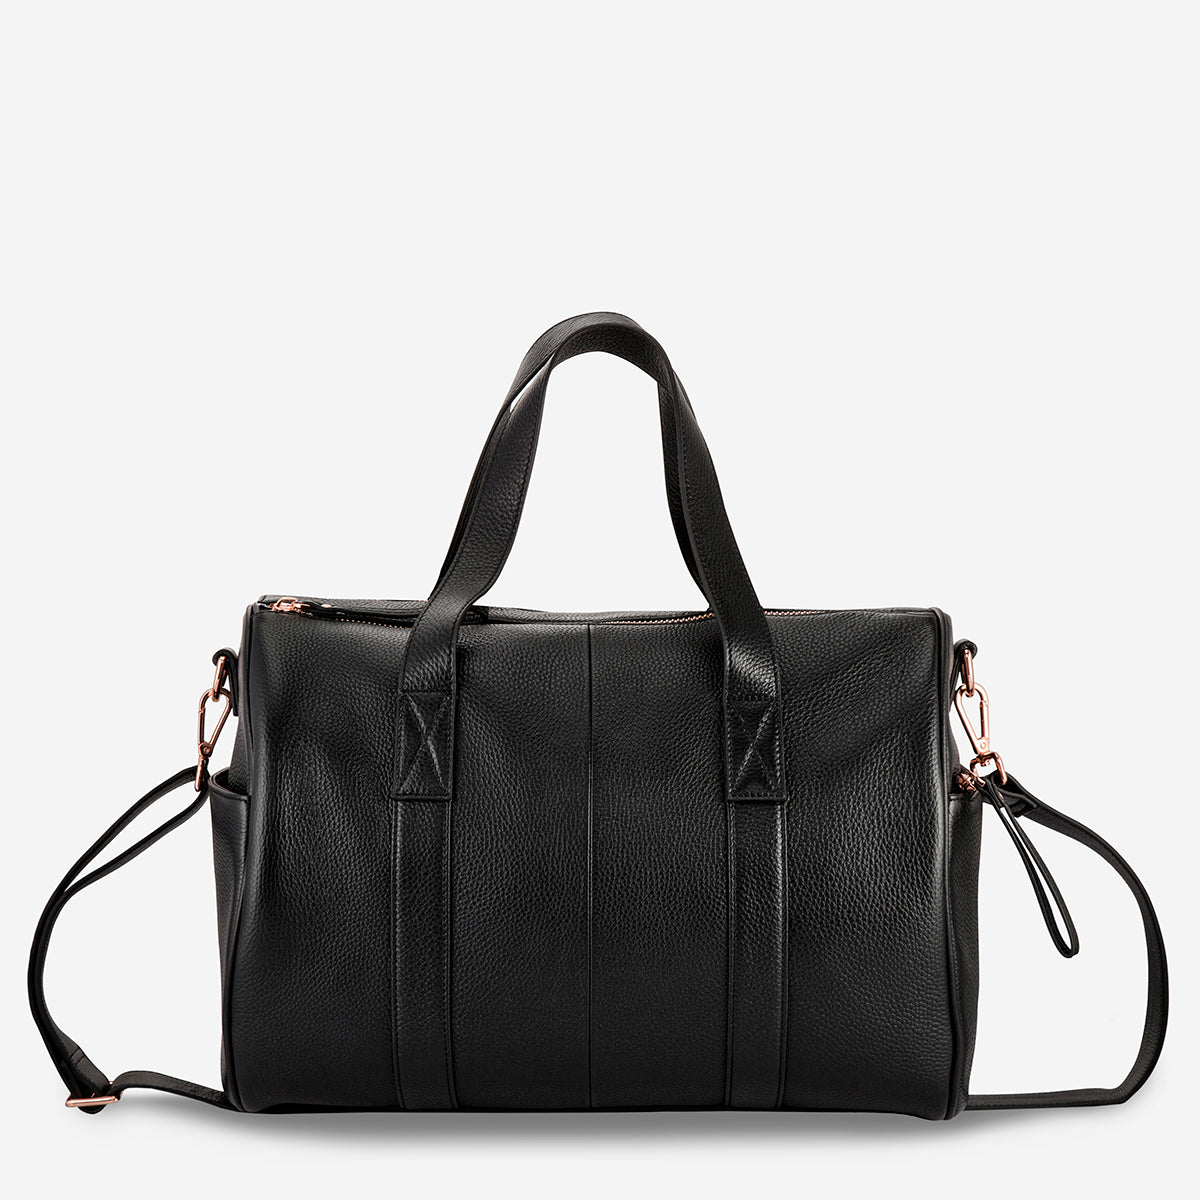 Status Anxiety Deep End Leather Baby Bag - Black